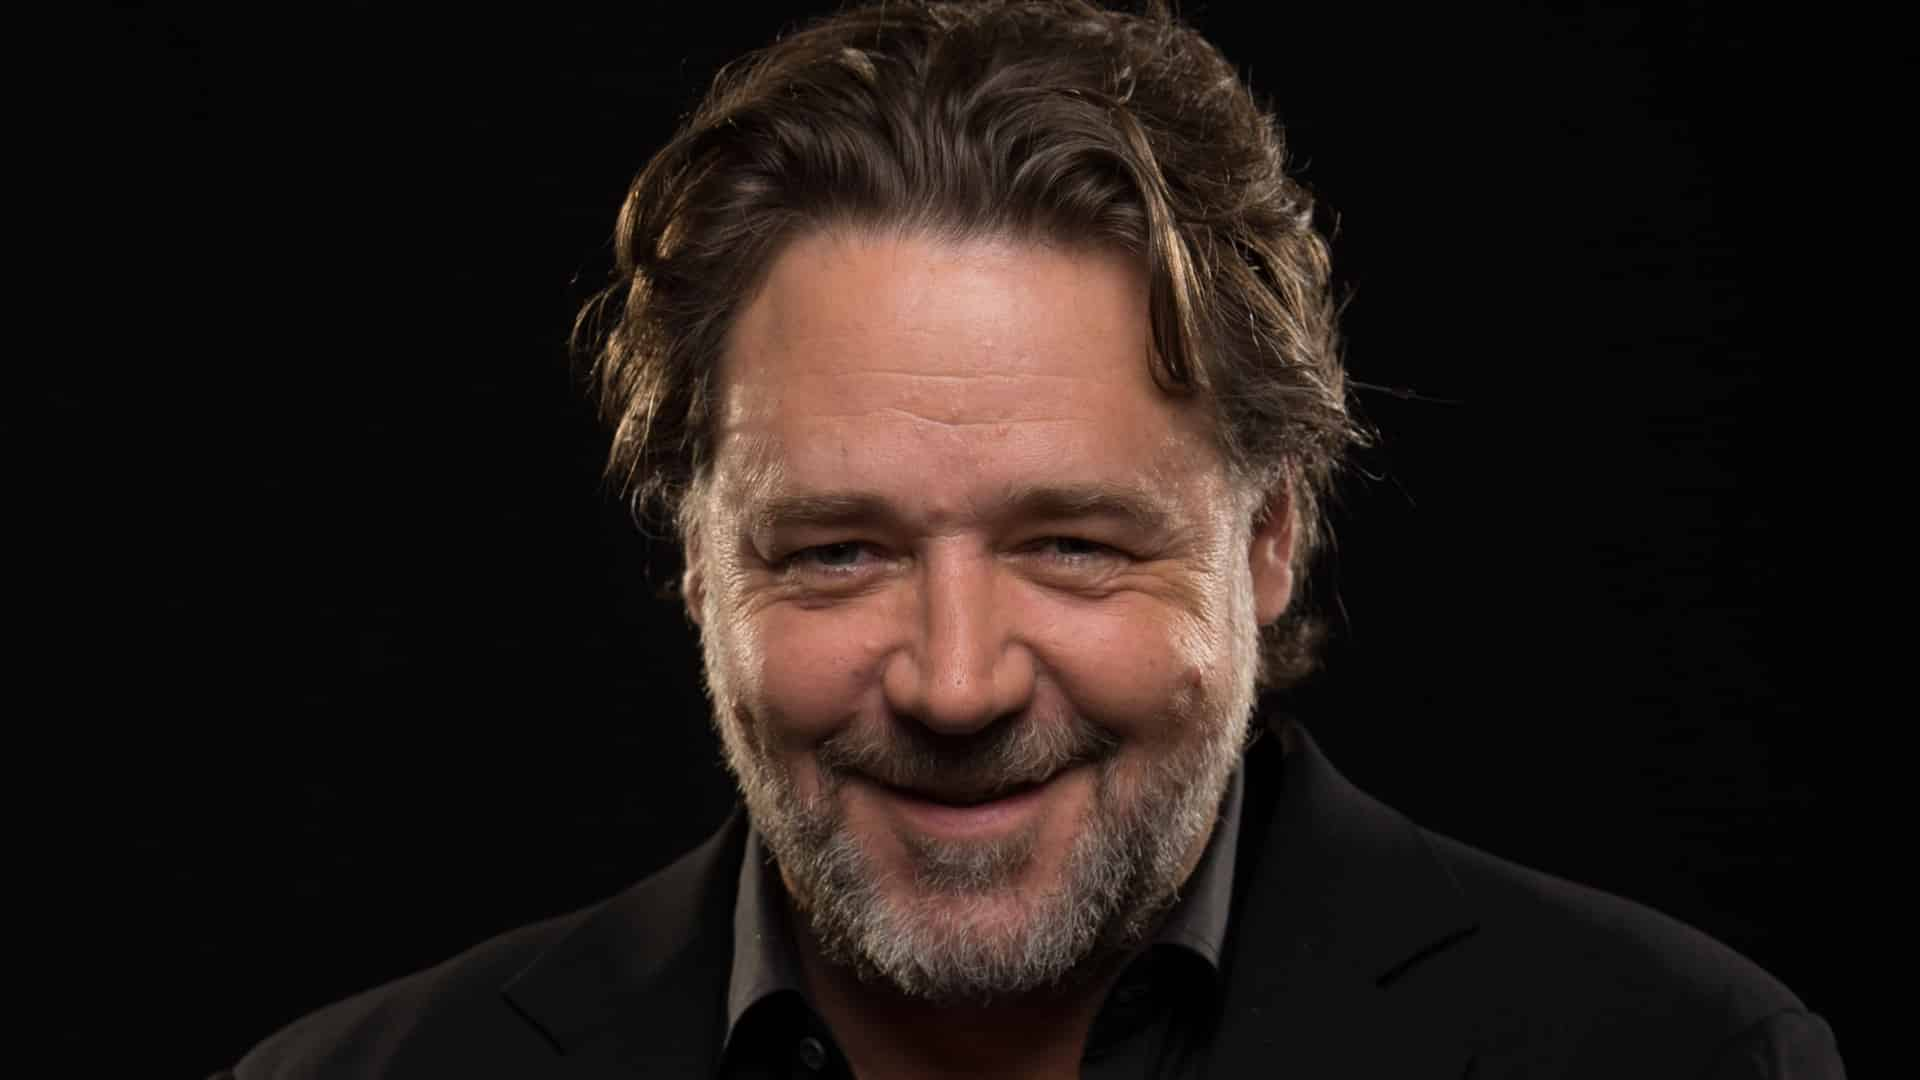 Poker Face Russell Crowe